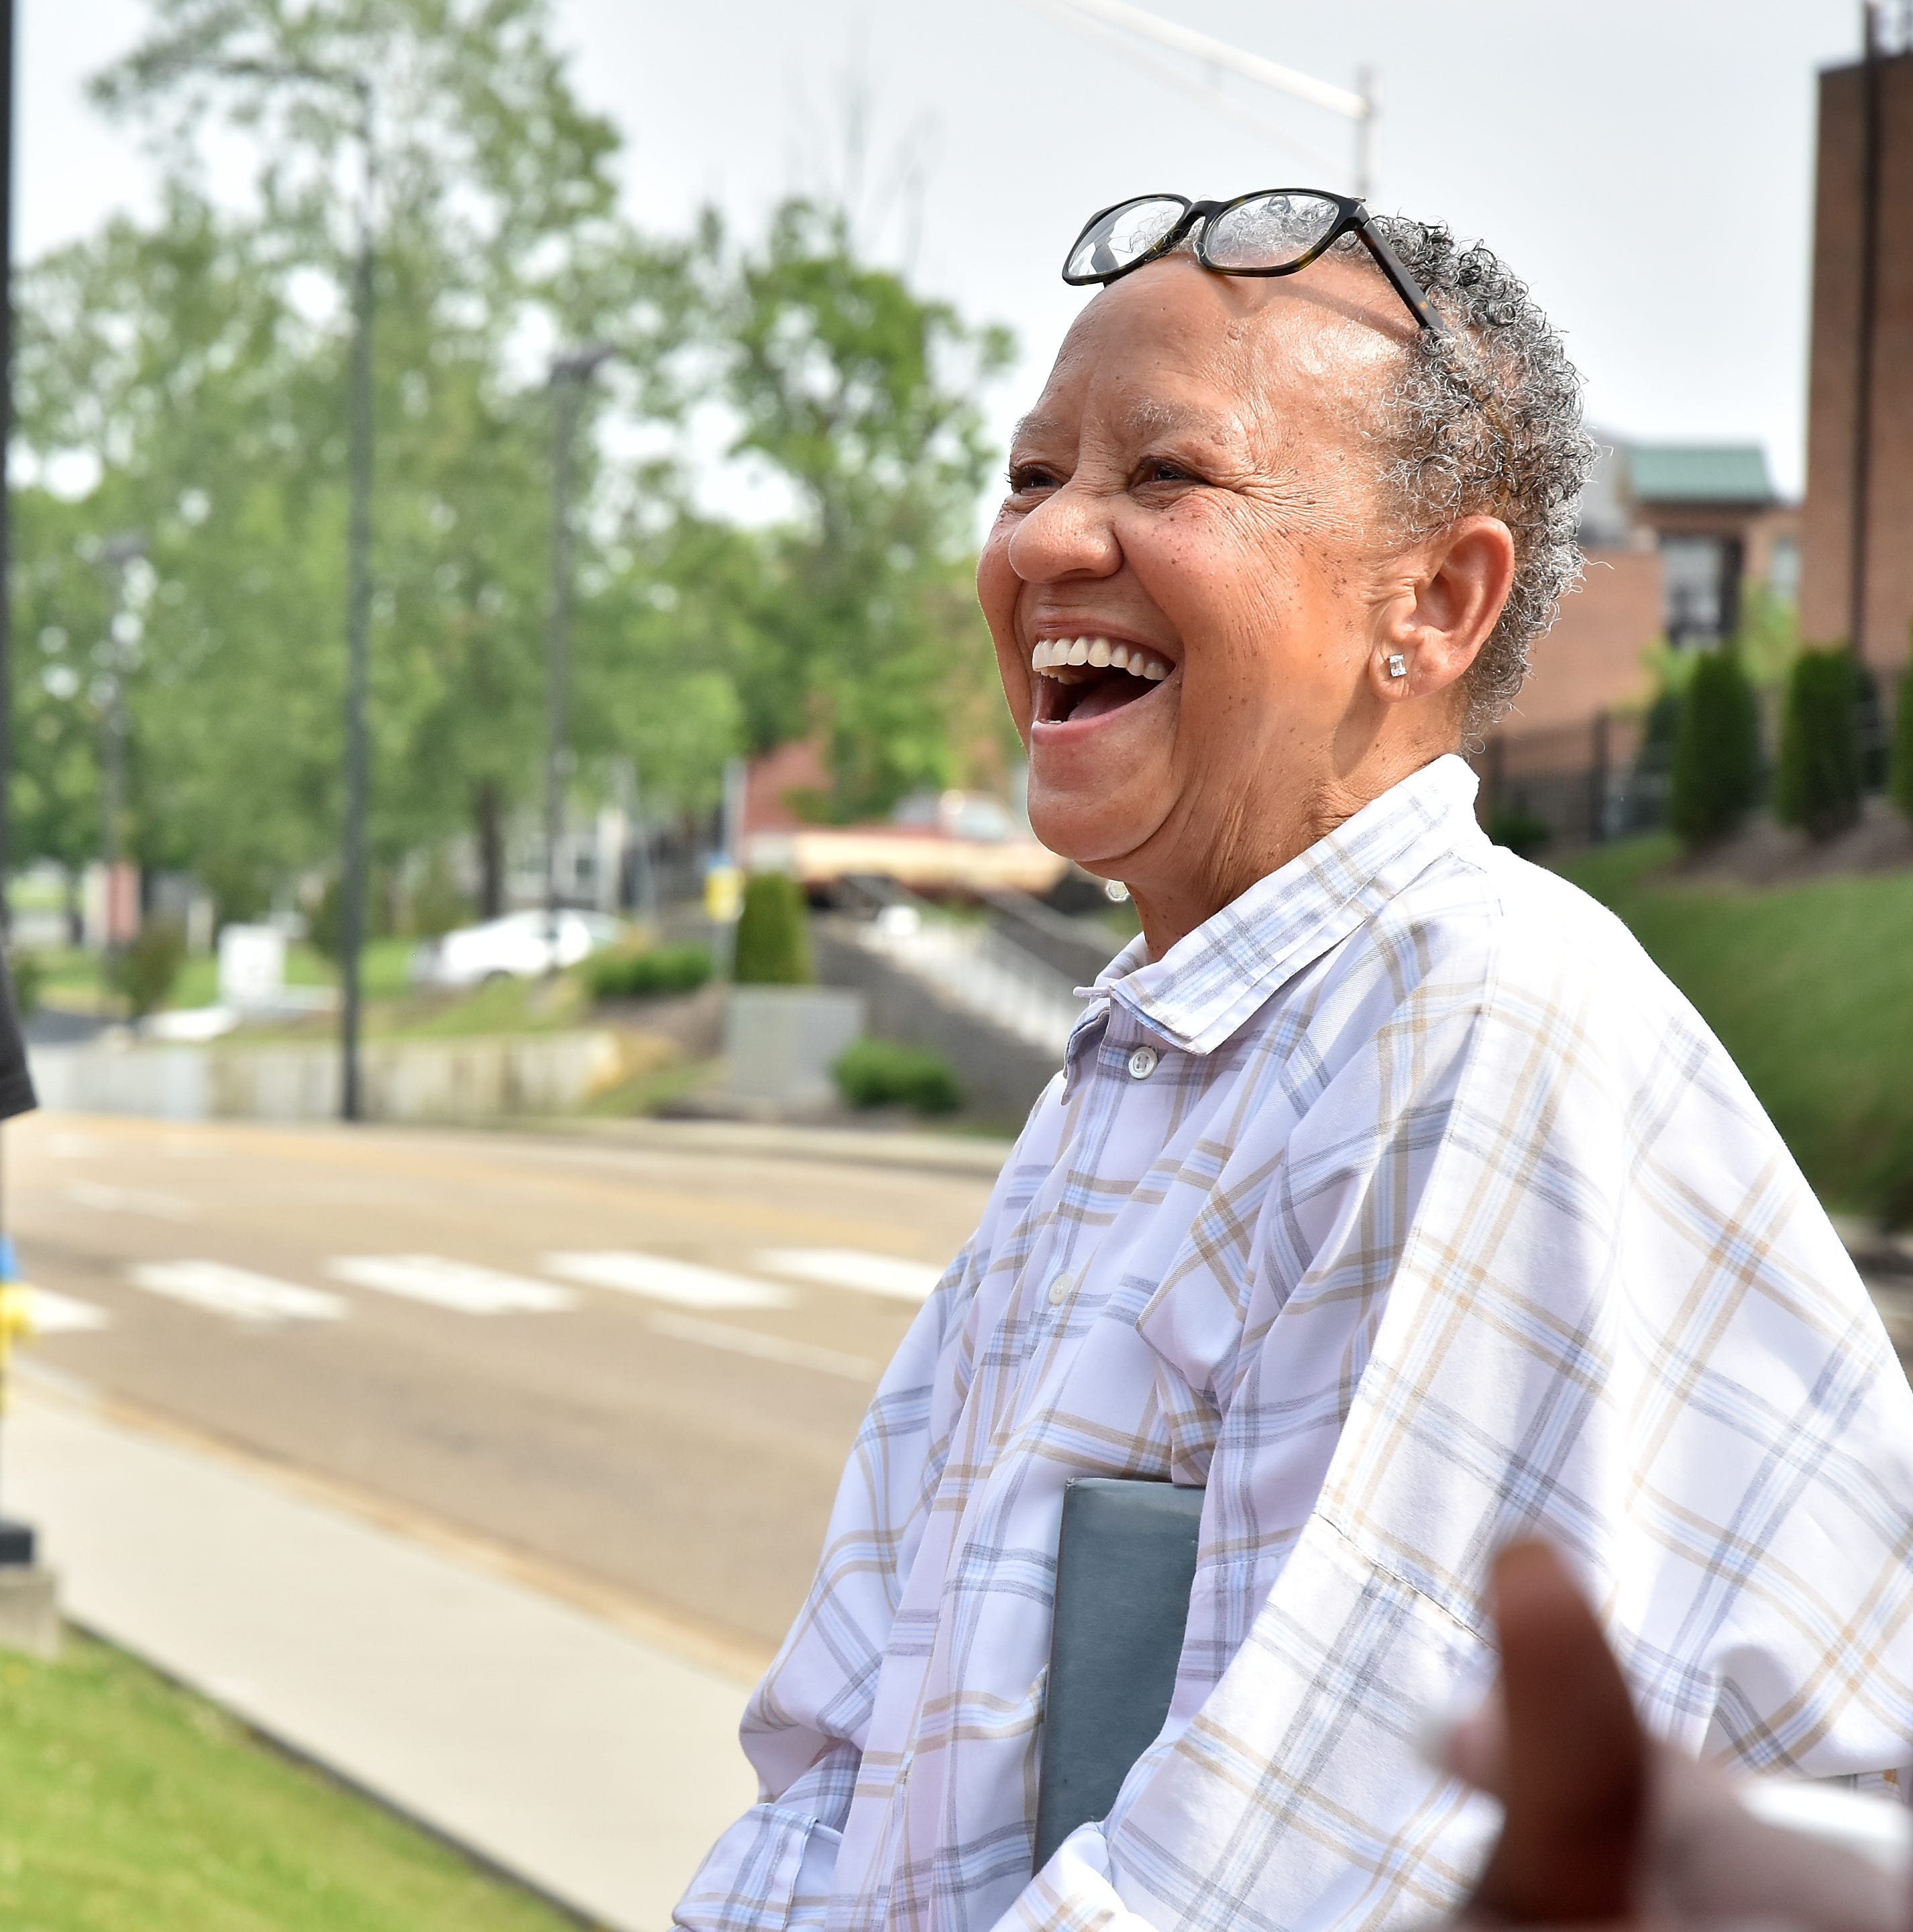 'She made it cool to be your authentic black self:' Knoxville celebrates poet Nikki Giovanni